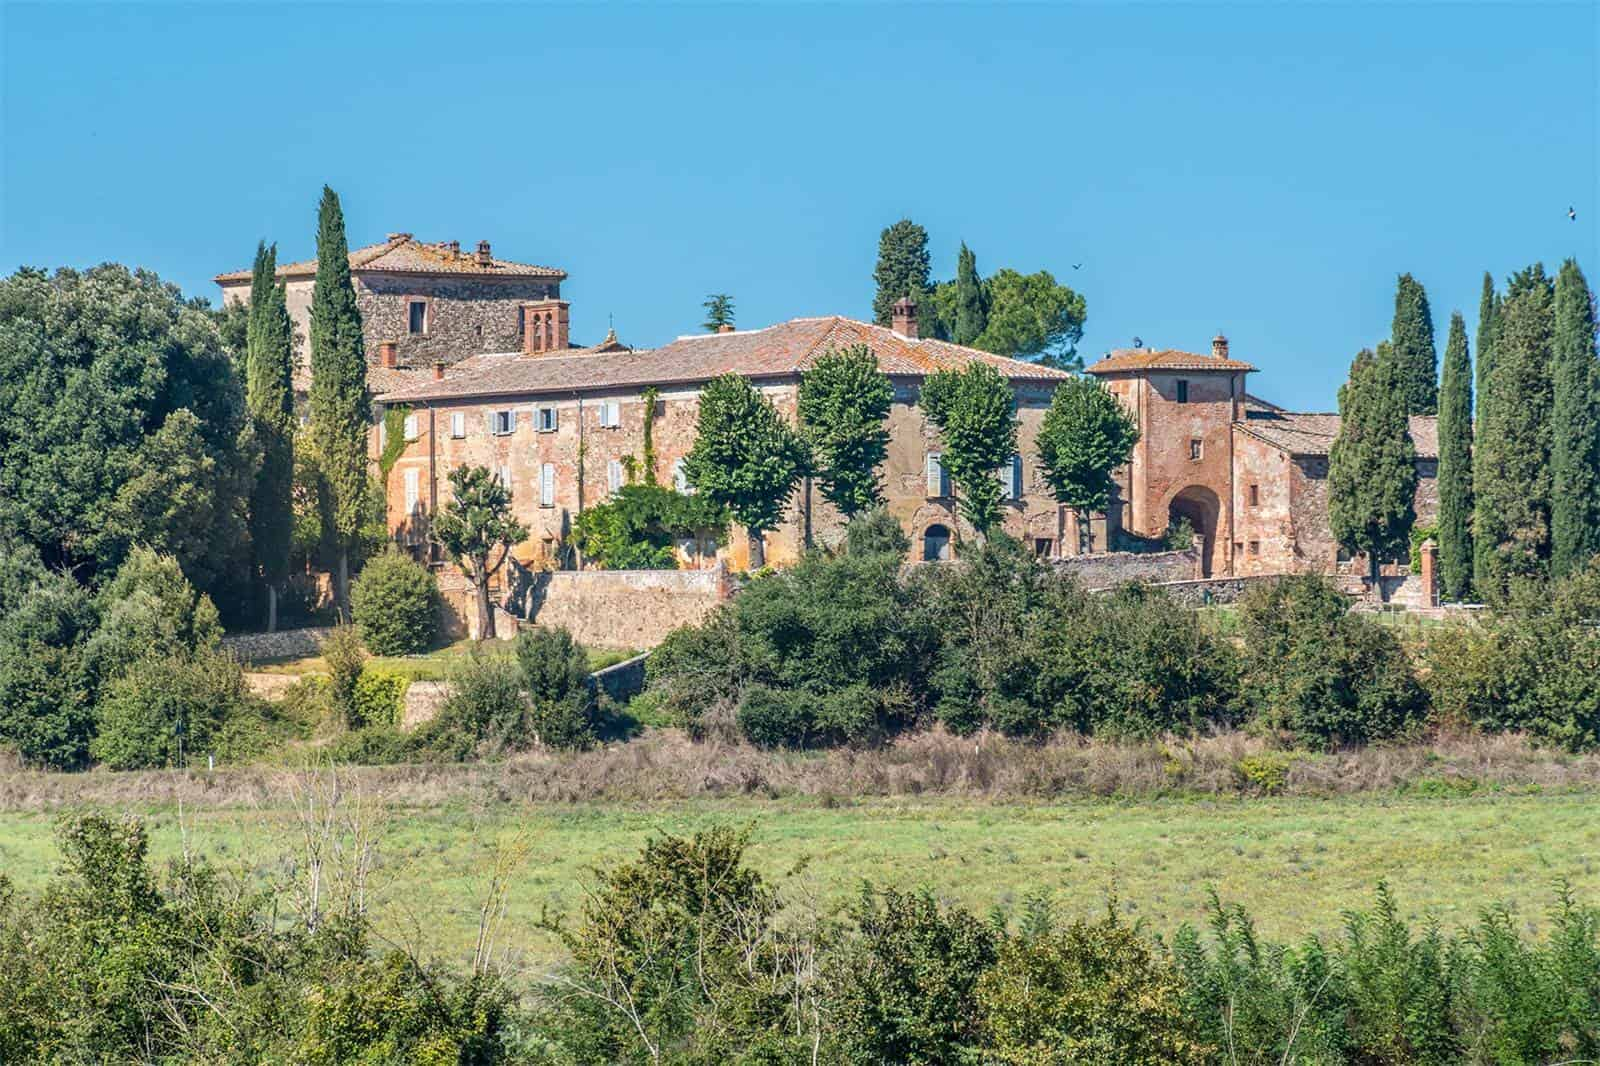 The Piccolomini Estate is a Breathtaking Property from Siena, Italy